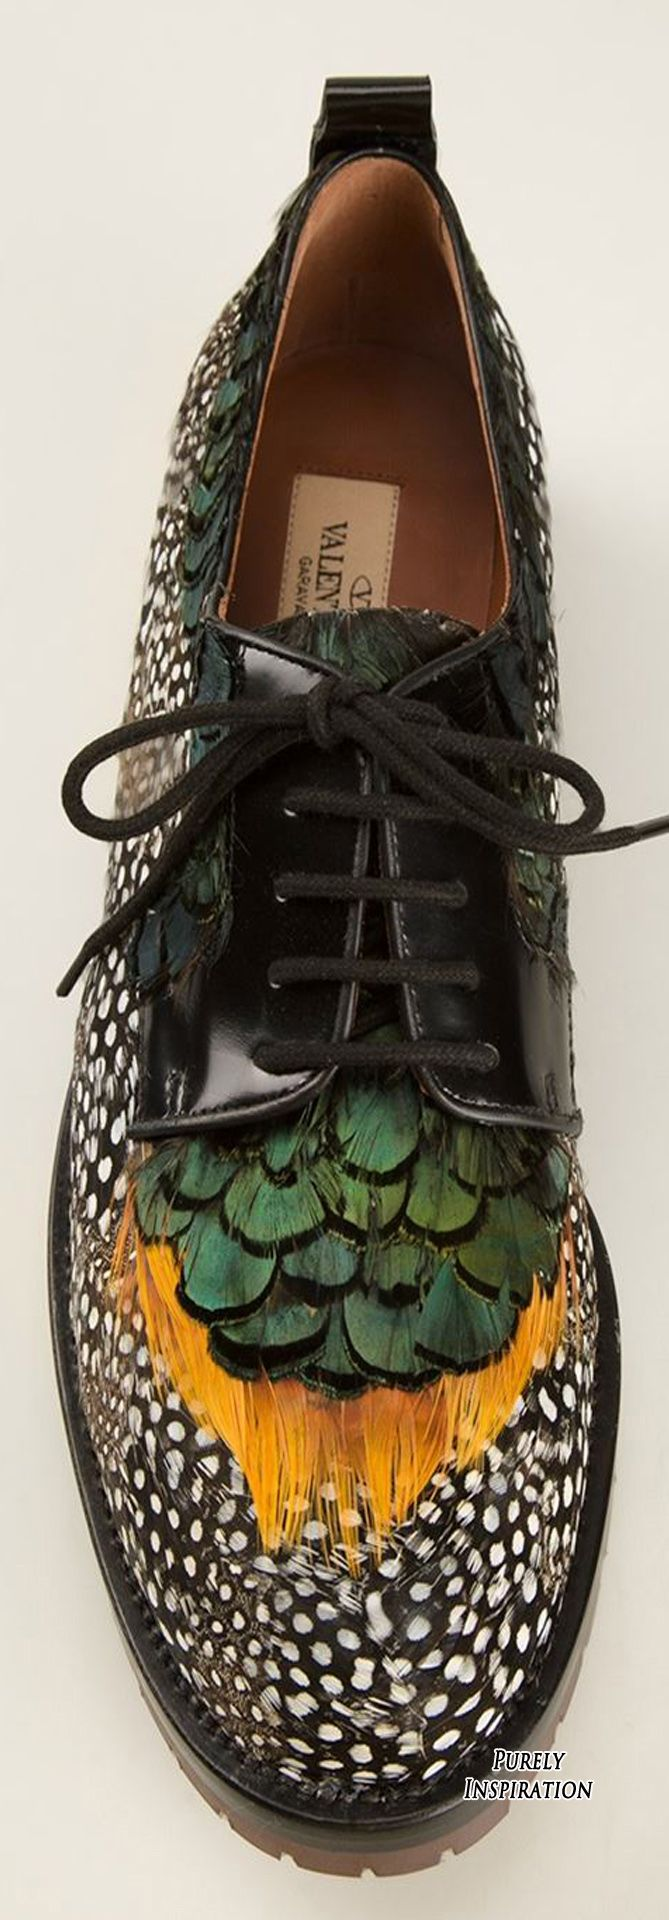 Valentino Garavani Women's feather brogues | Purely Inspiration